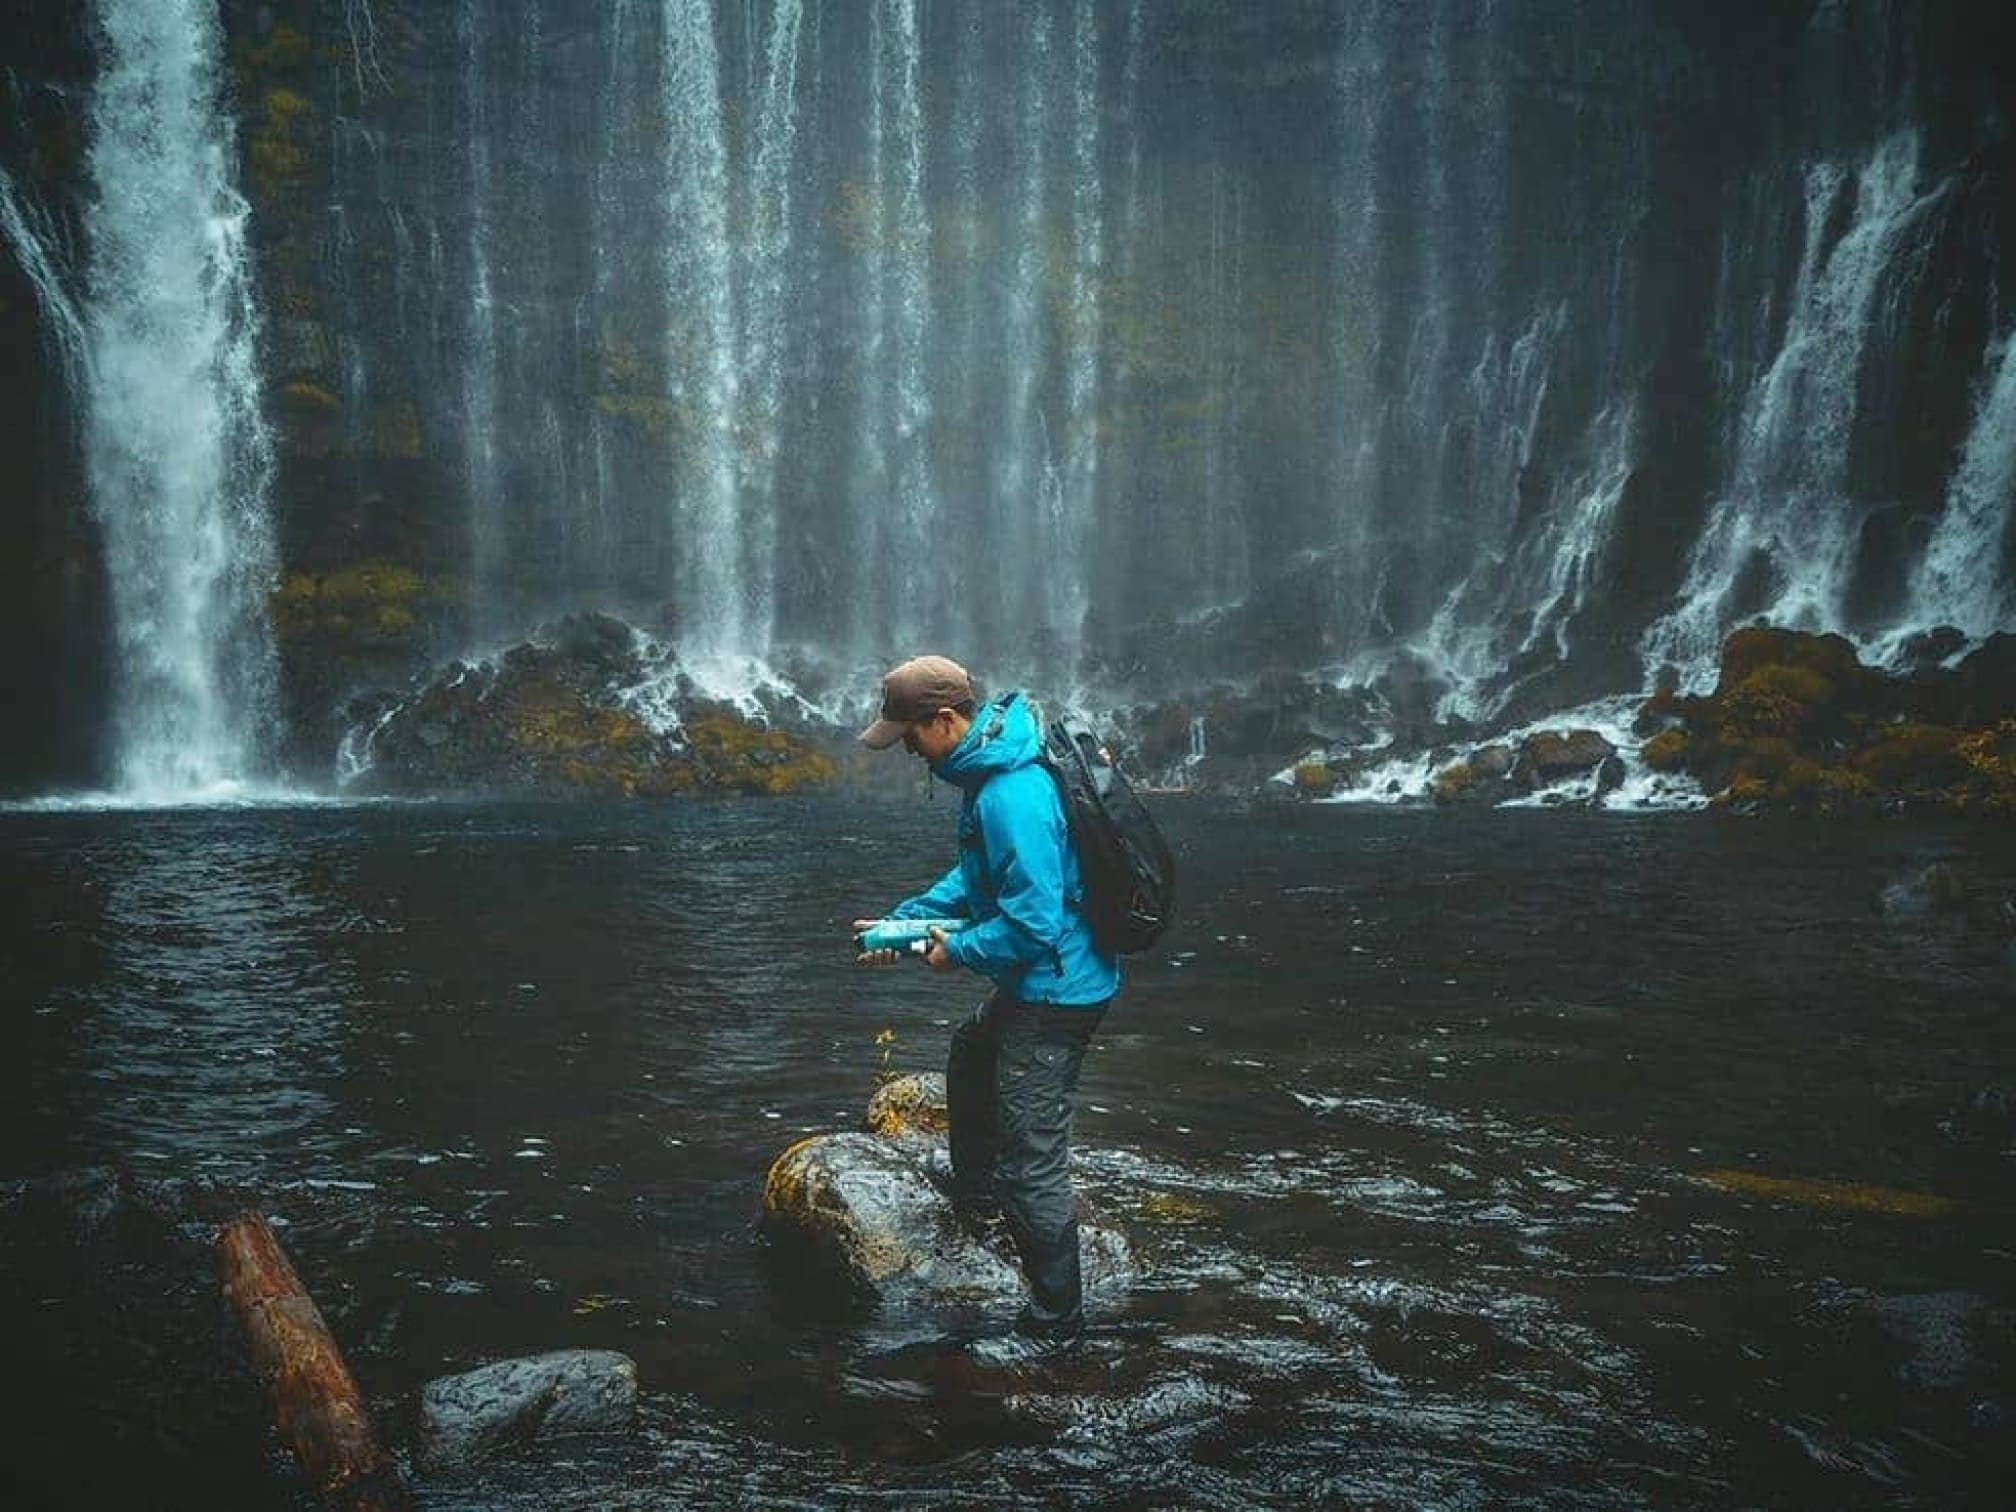 Instagram image showing a hiker posing in front of a waterfall.